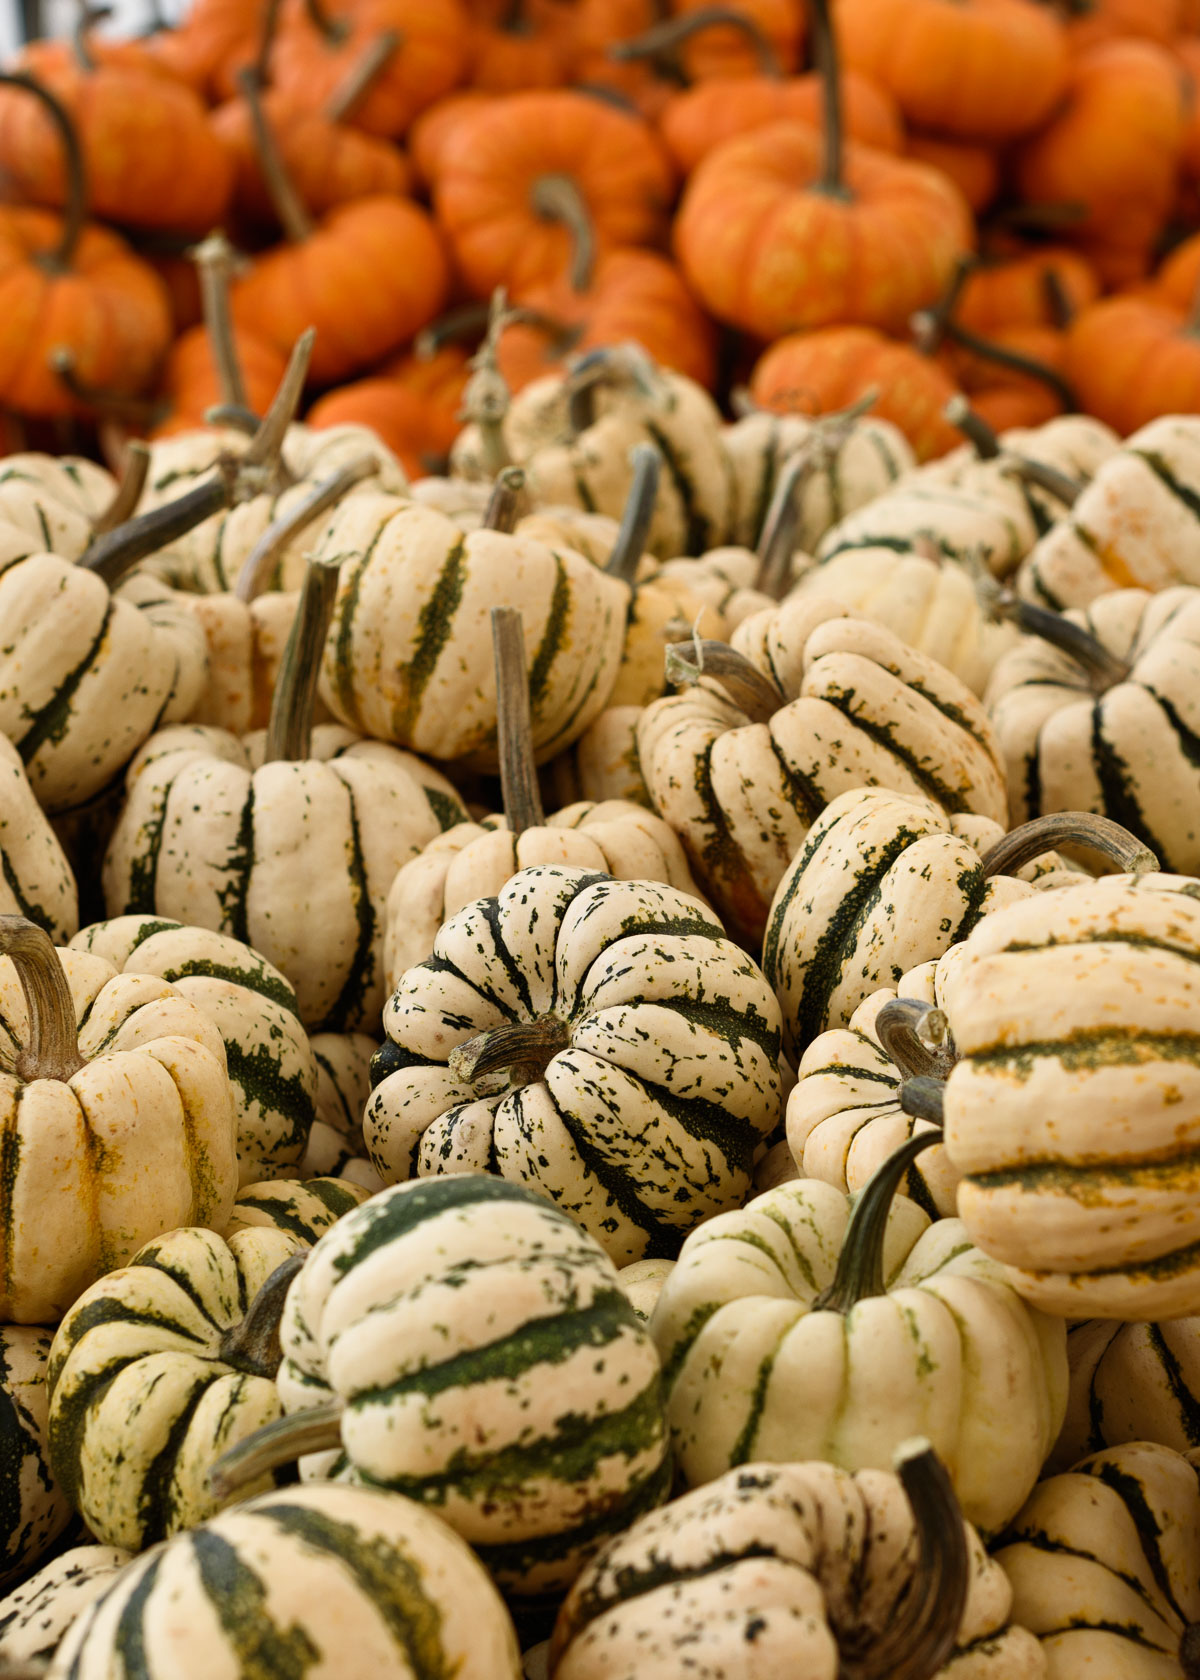 A pile of miniature orange and green and white striped pumpkins at the farmers market.